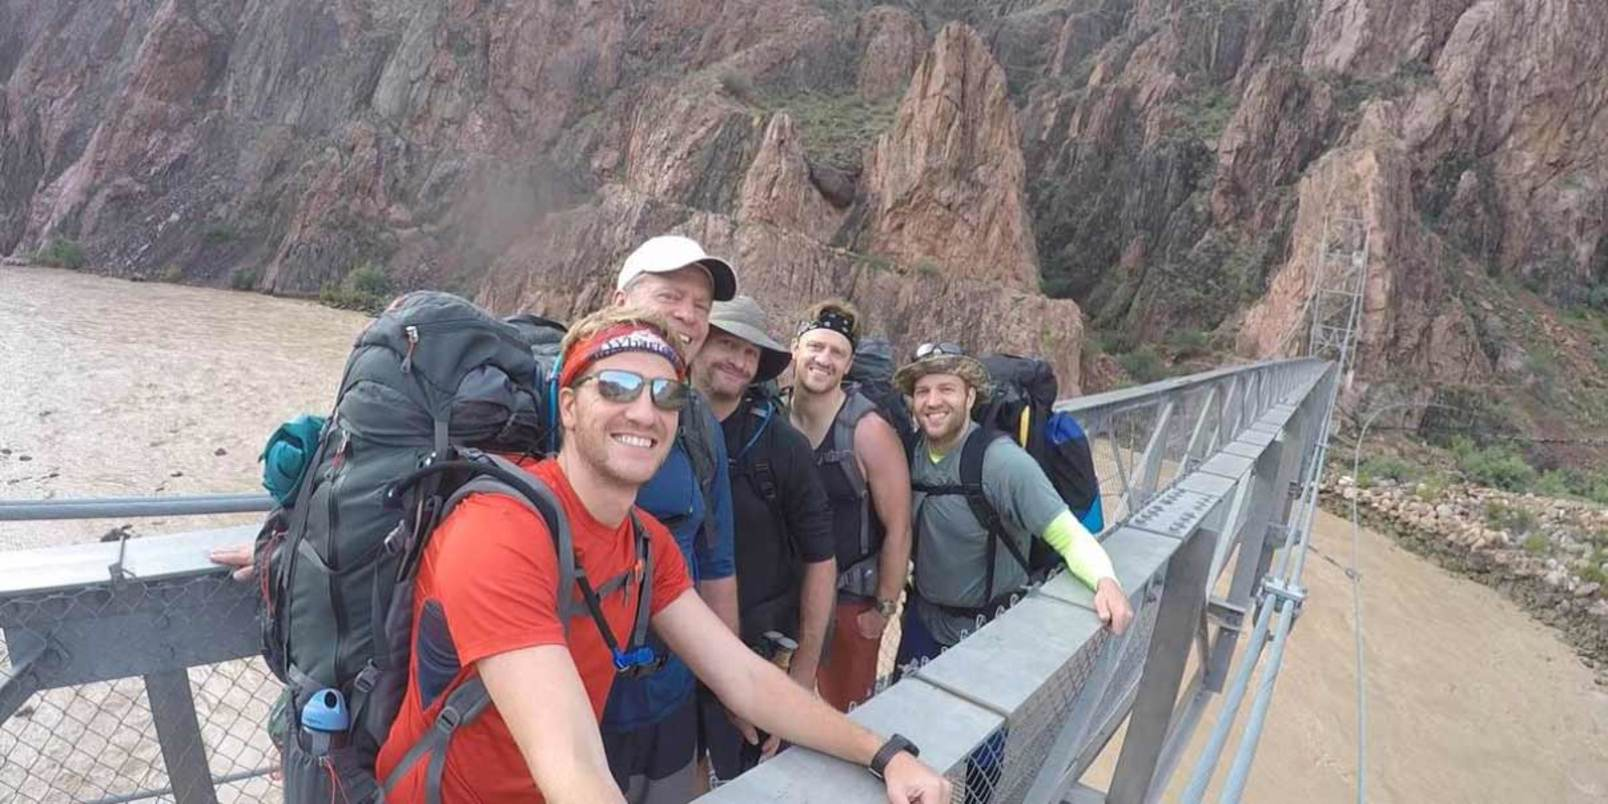 Nate Checketts, Co-Founder & CEO of Rhone with Friends and Family on Bridge